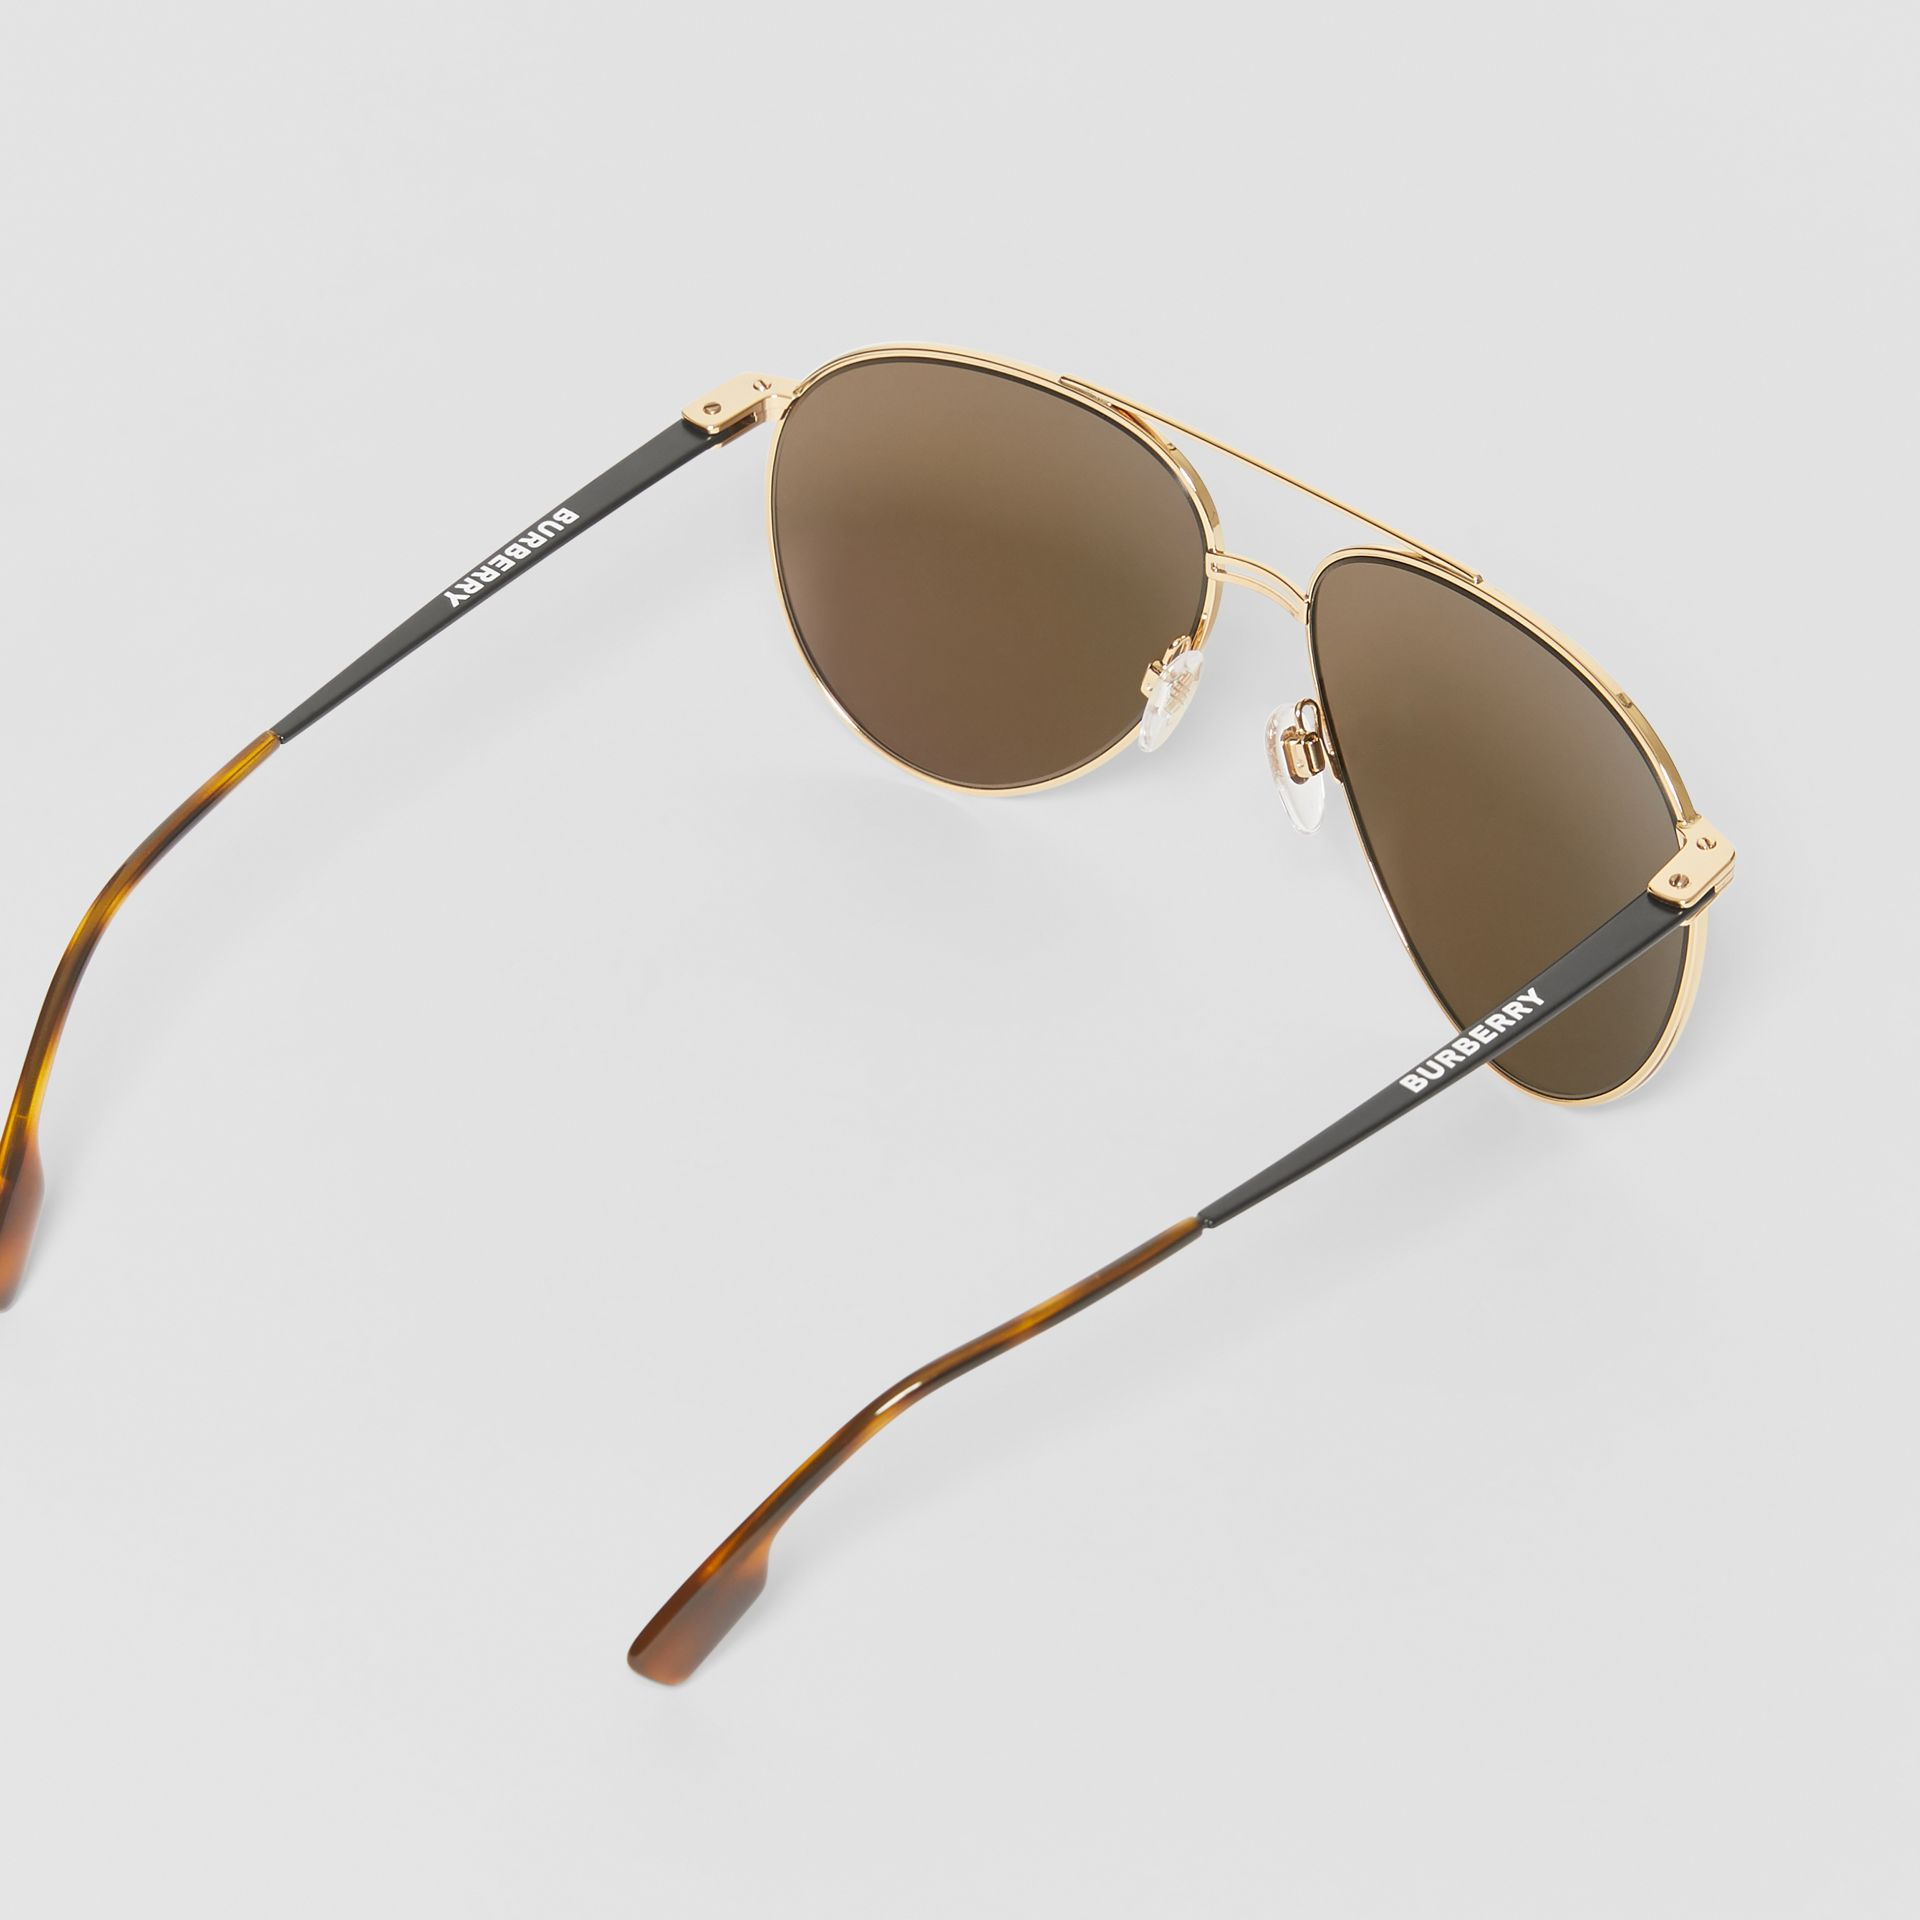 Top Bar Detail Pilot Sunglasses in Gold - Men | Burberry Canada - gallery image 4